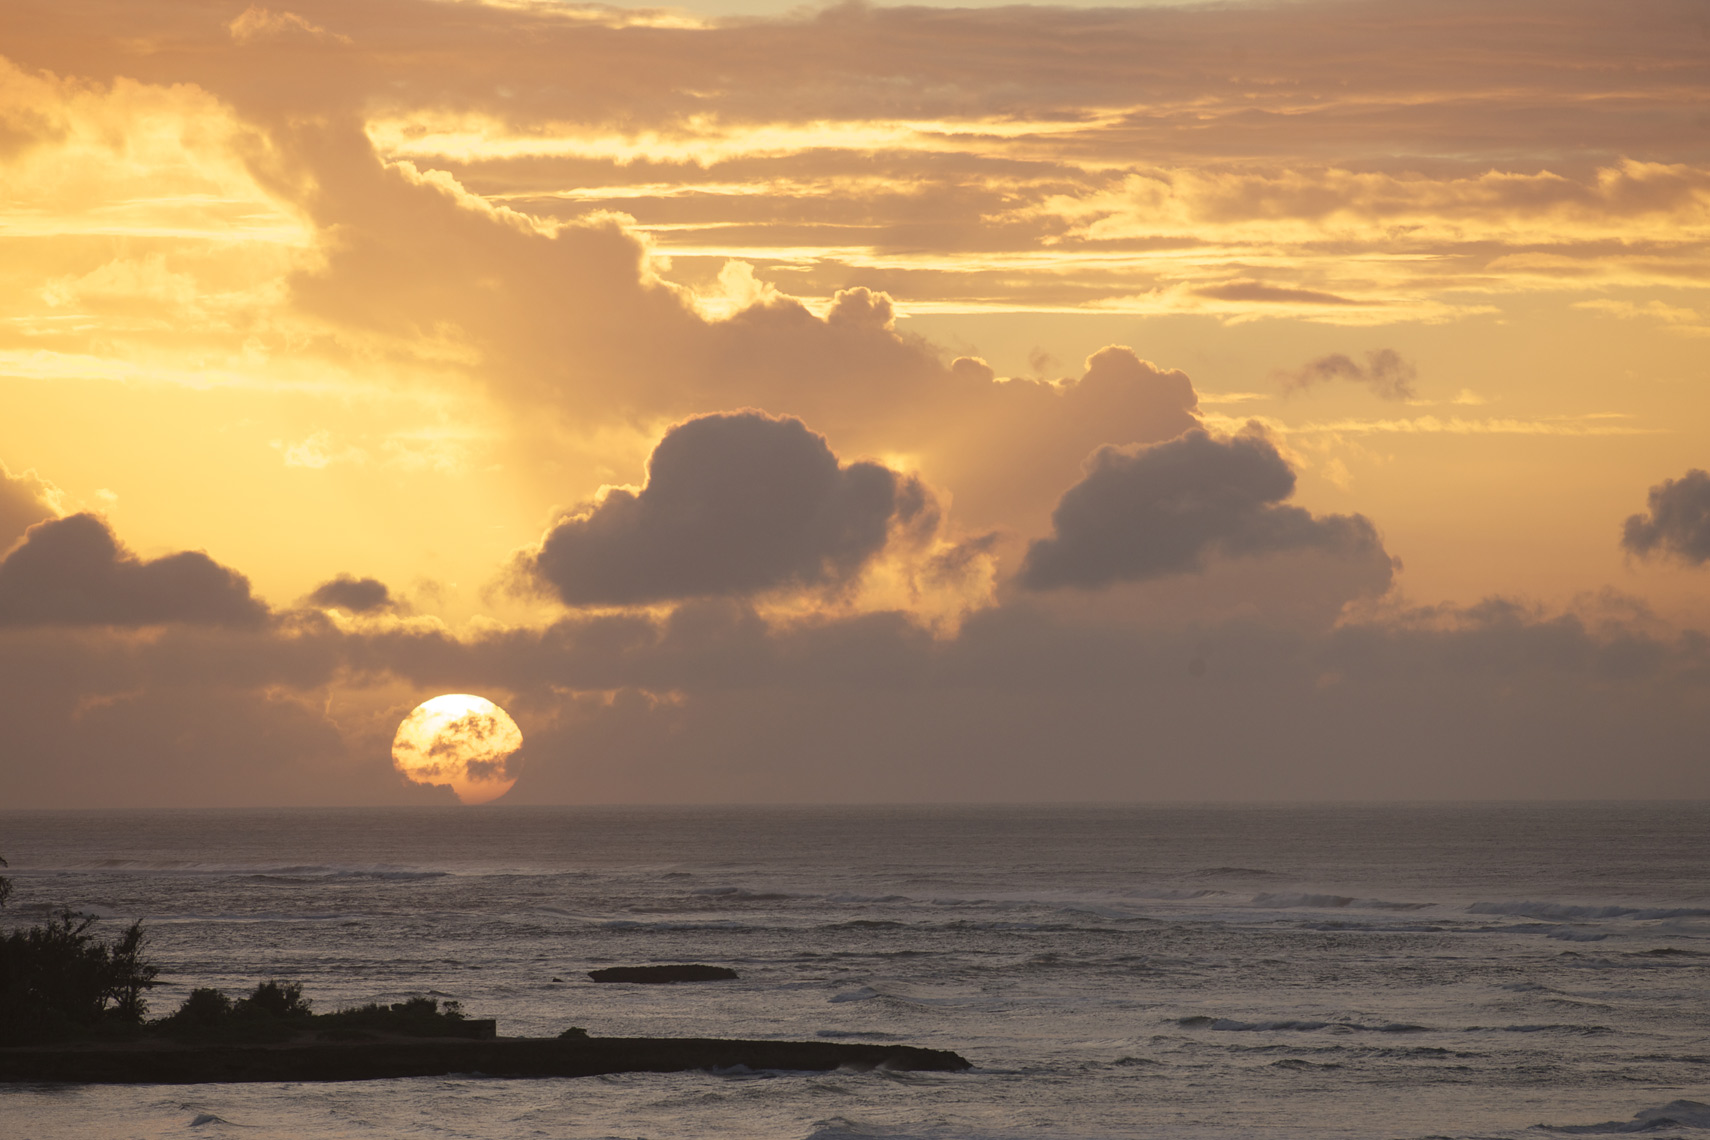 Sunset from room#406 Turtle Bay,HI/Steve Mason Photography